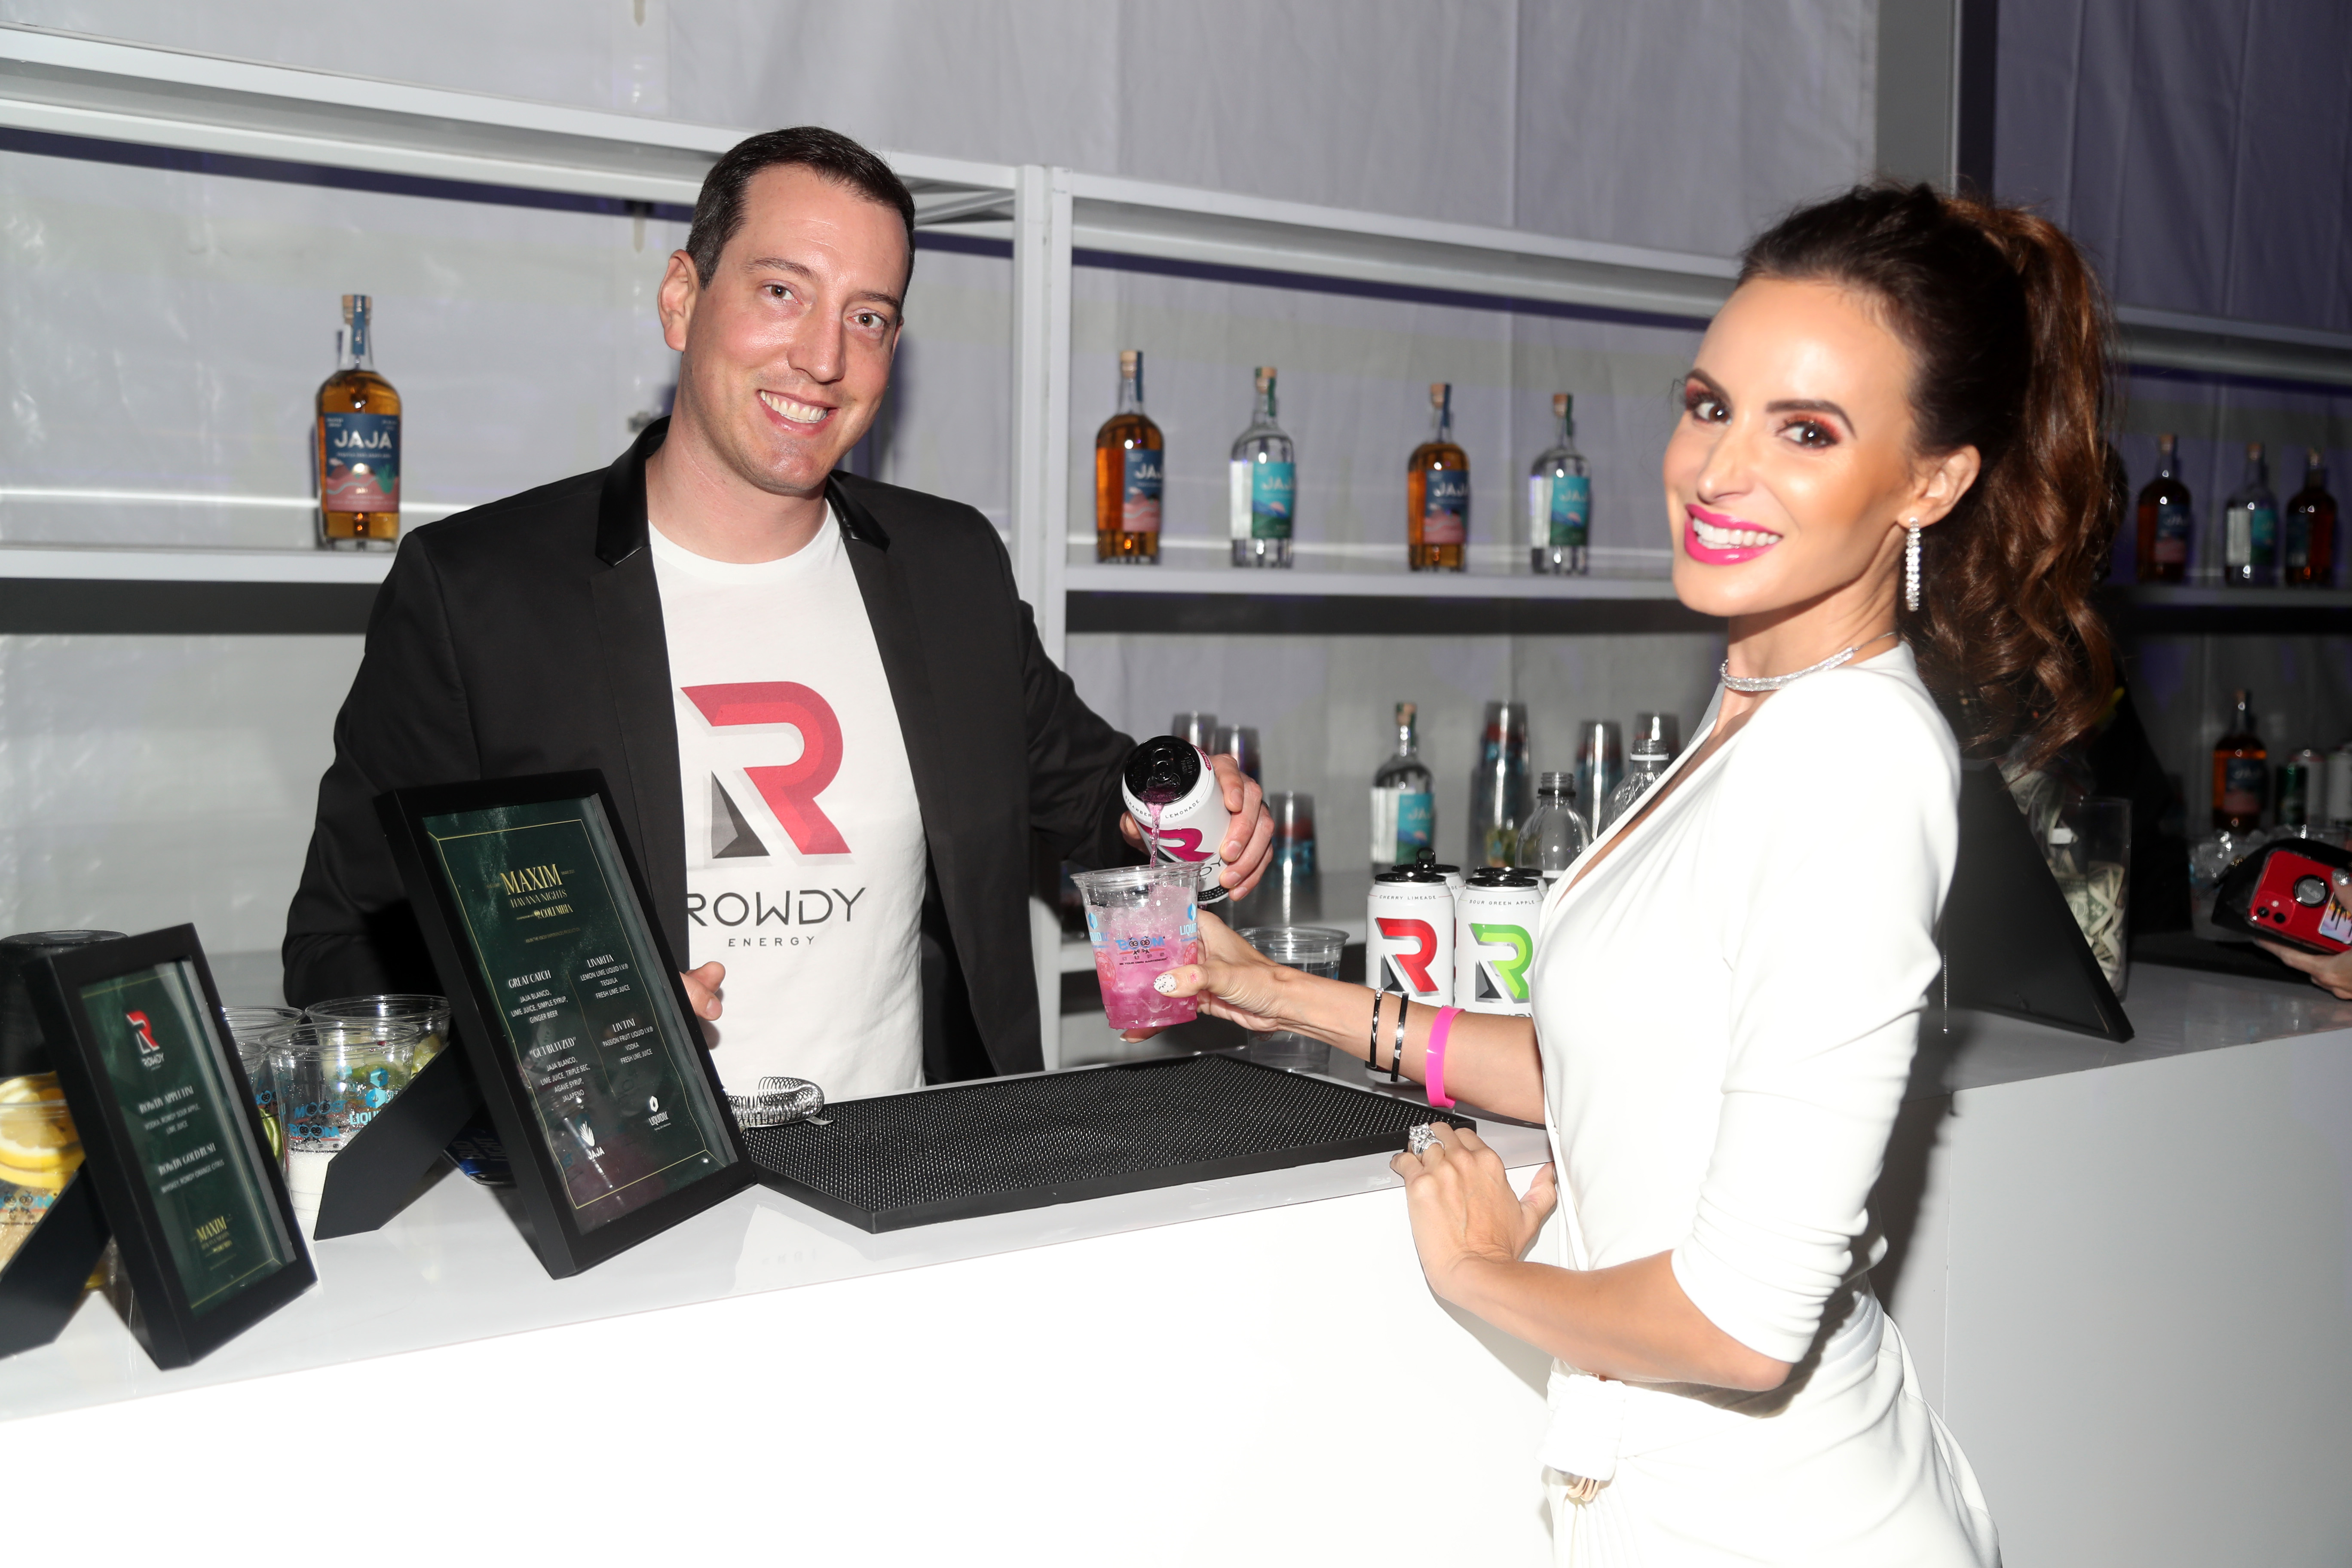 Kyle and Samantha Busch have been open about their own experiences and operate a foundation helping other couples through the in vitro fertilization process. | Cassidy Sparrow/Getty Images for MAXIM